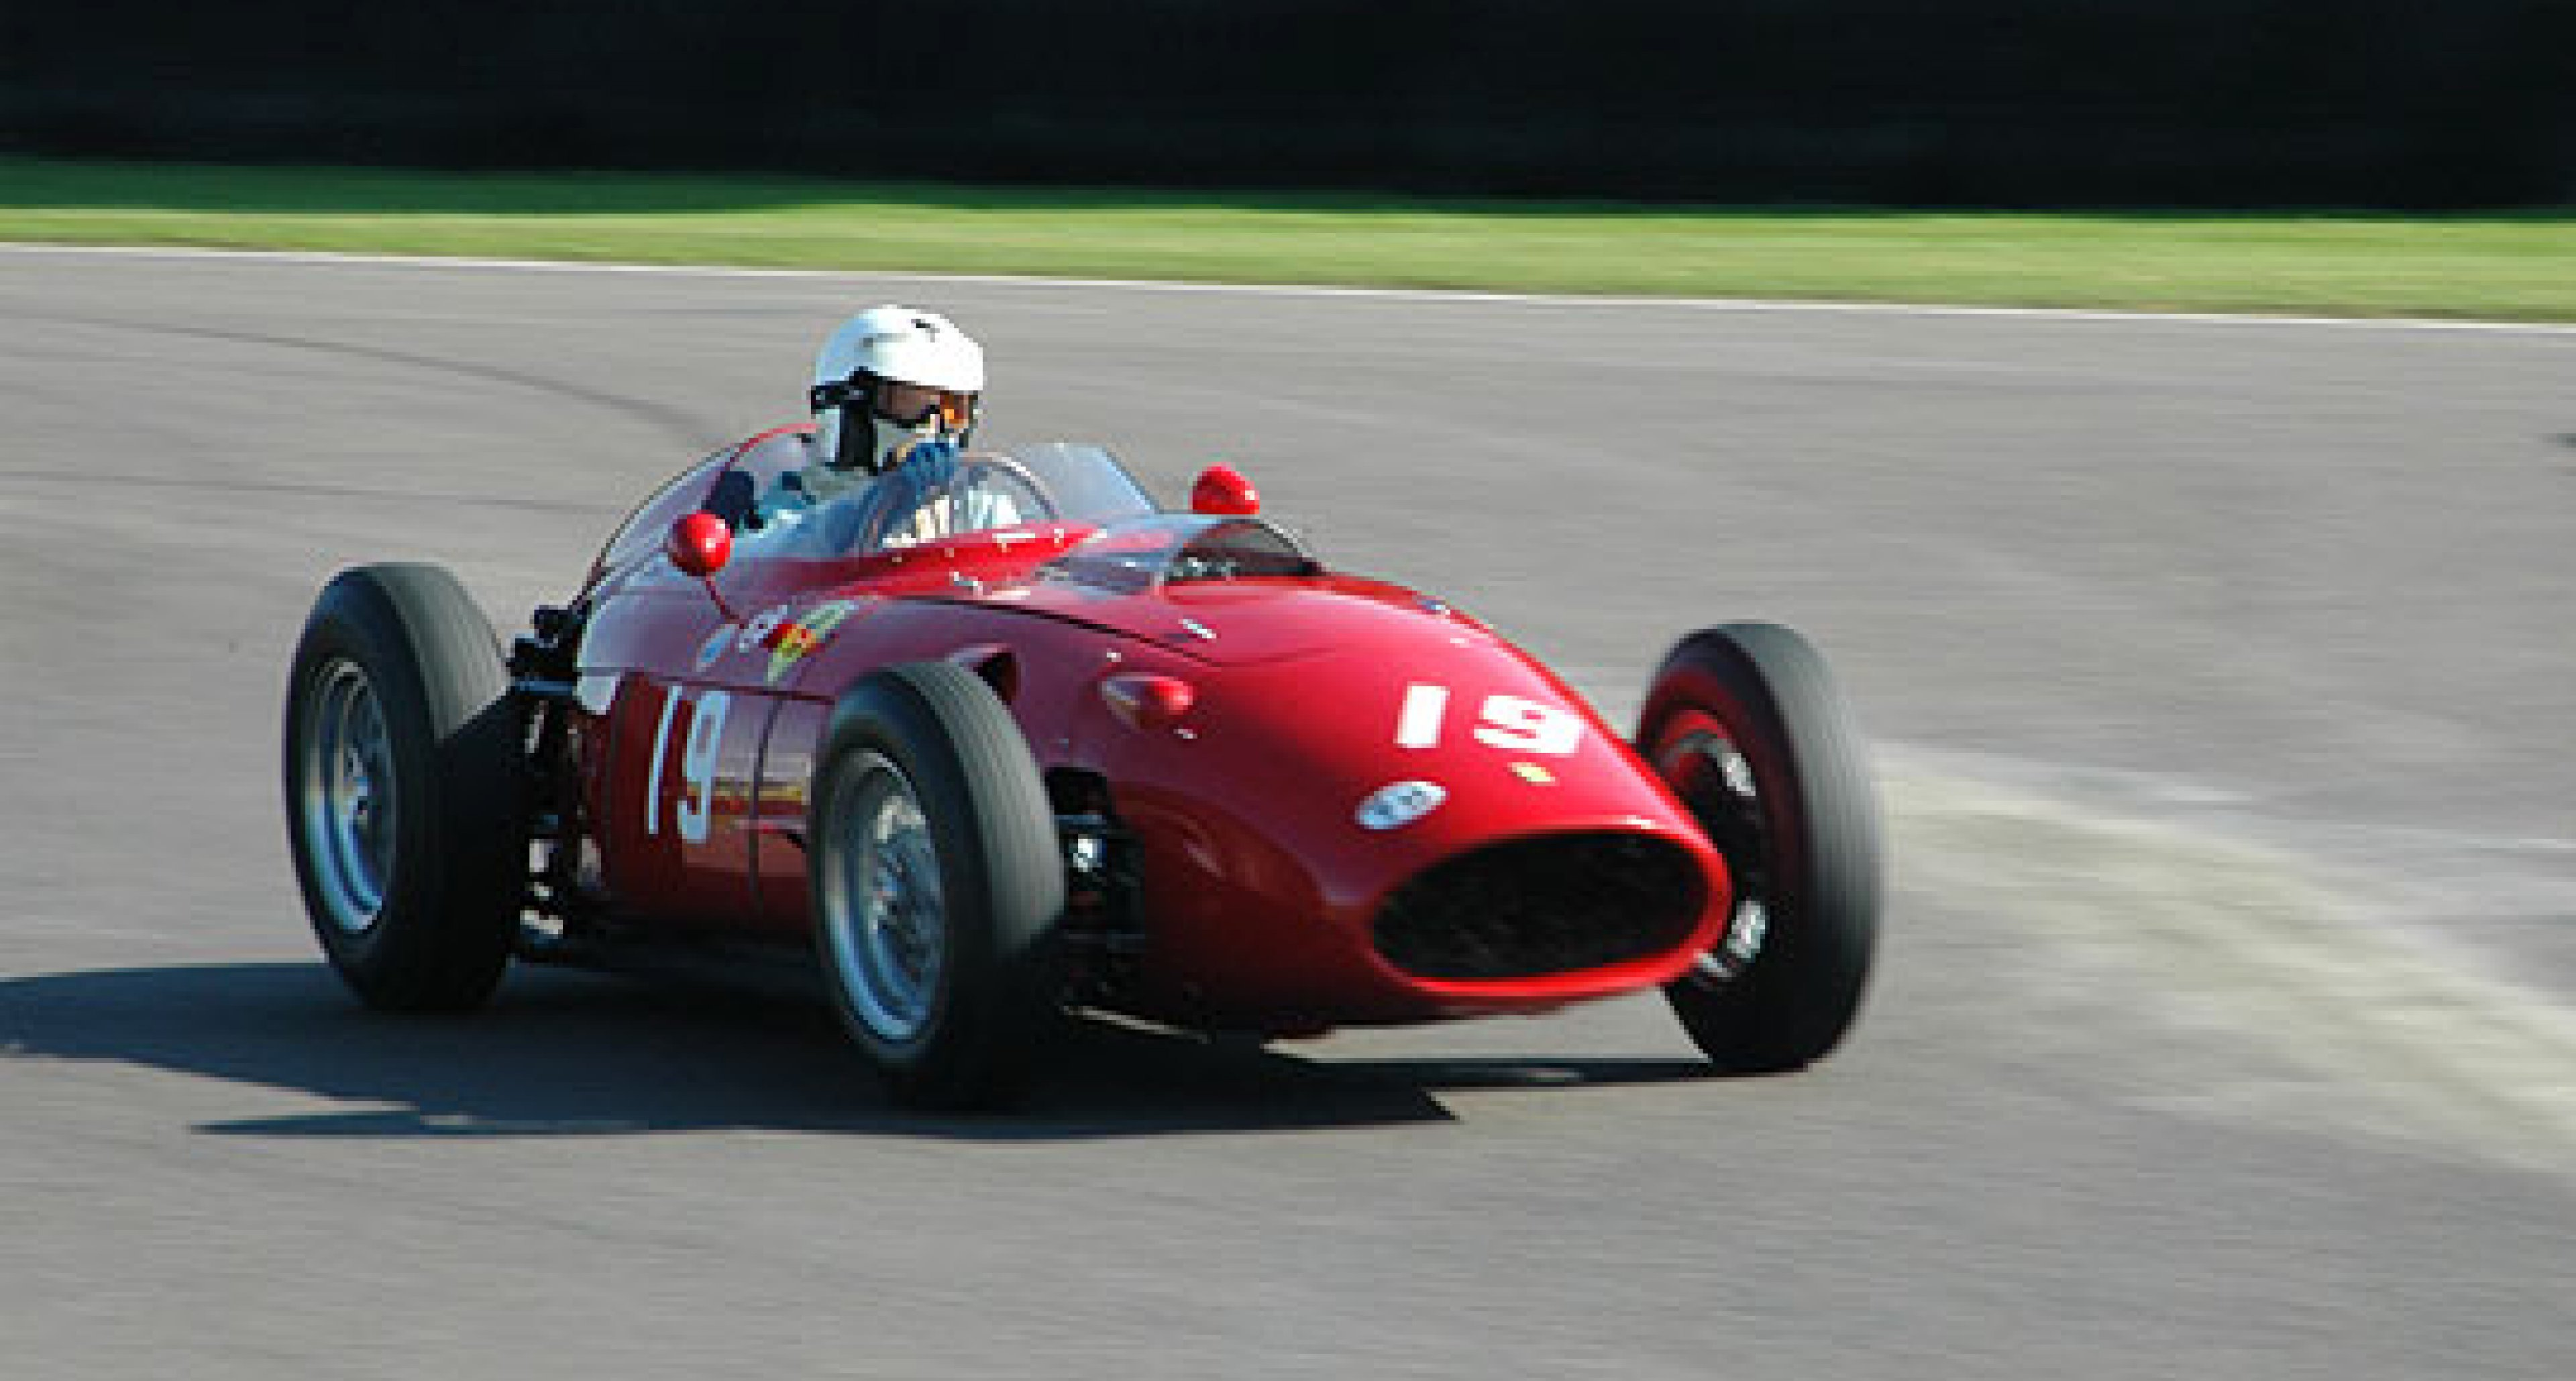 The 2008 Goodwood Revival